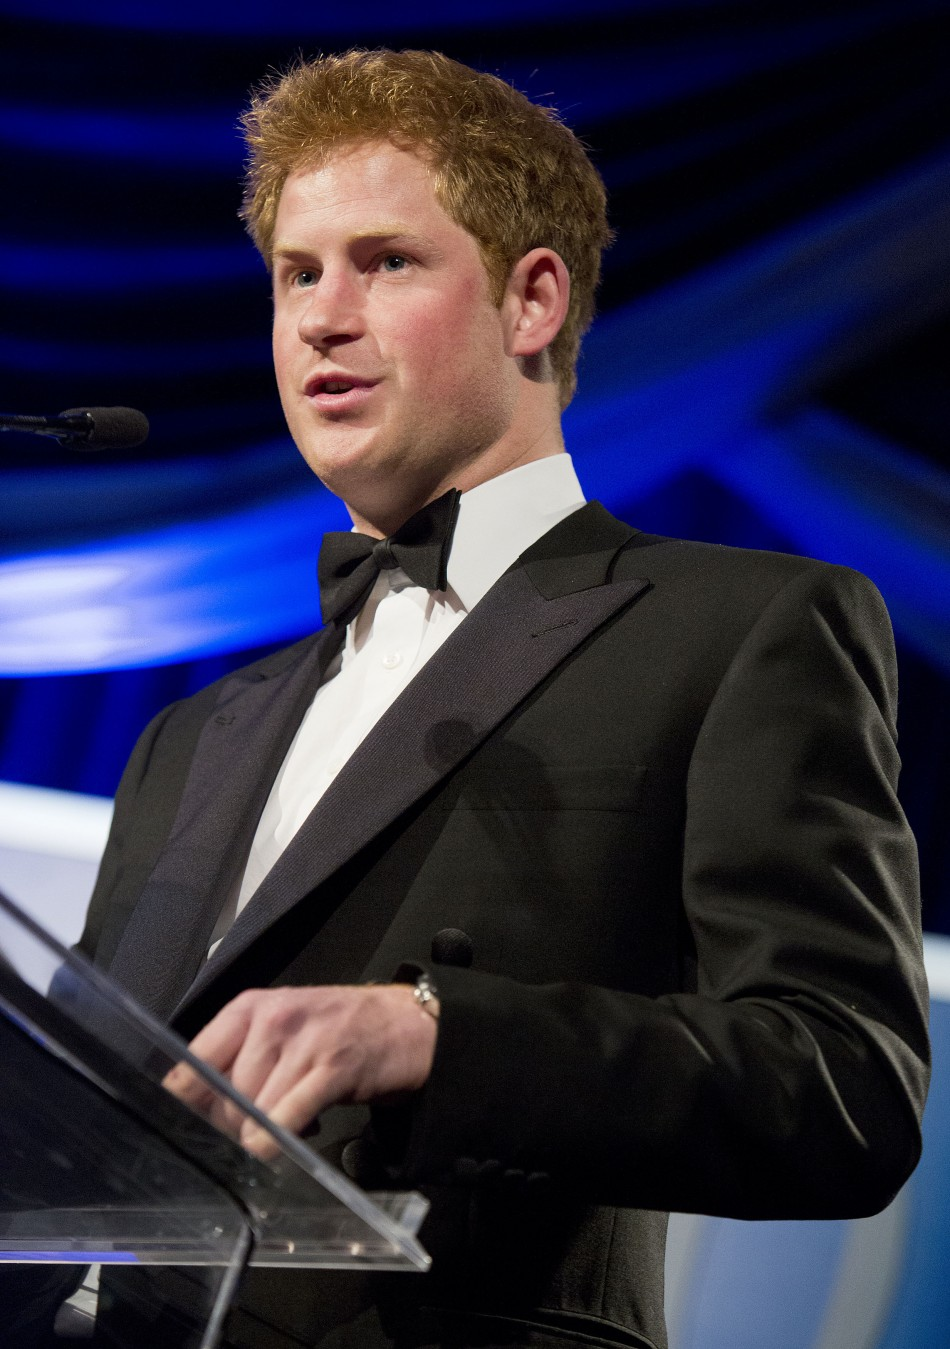 If Prince Harry would have his way, assuming he had the tremendous freedom to go with it, he would always choose life as that of being an army soldier over that of being a British royal.